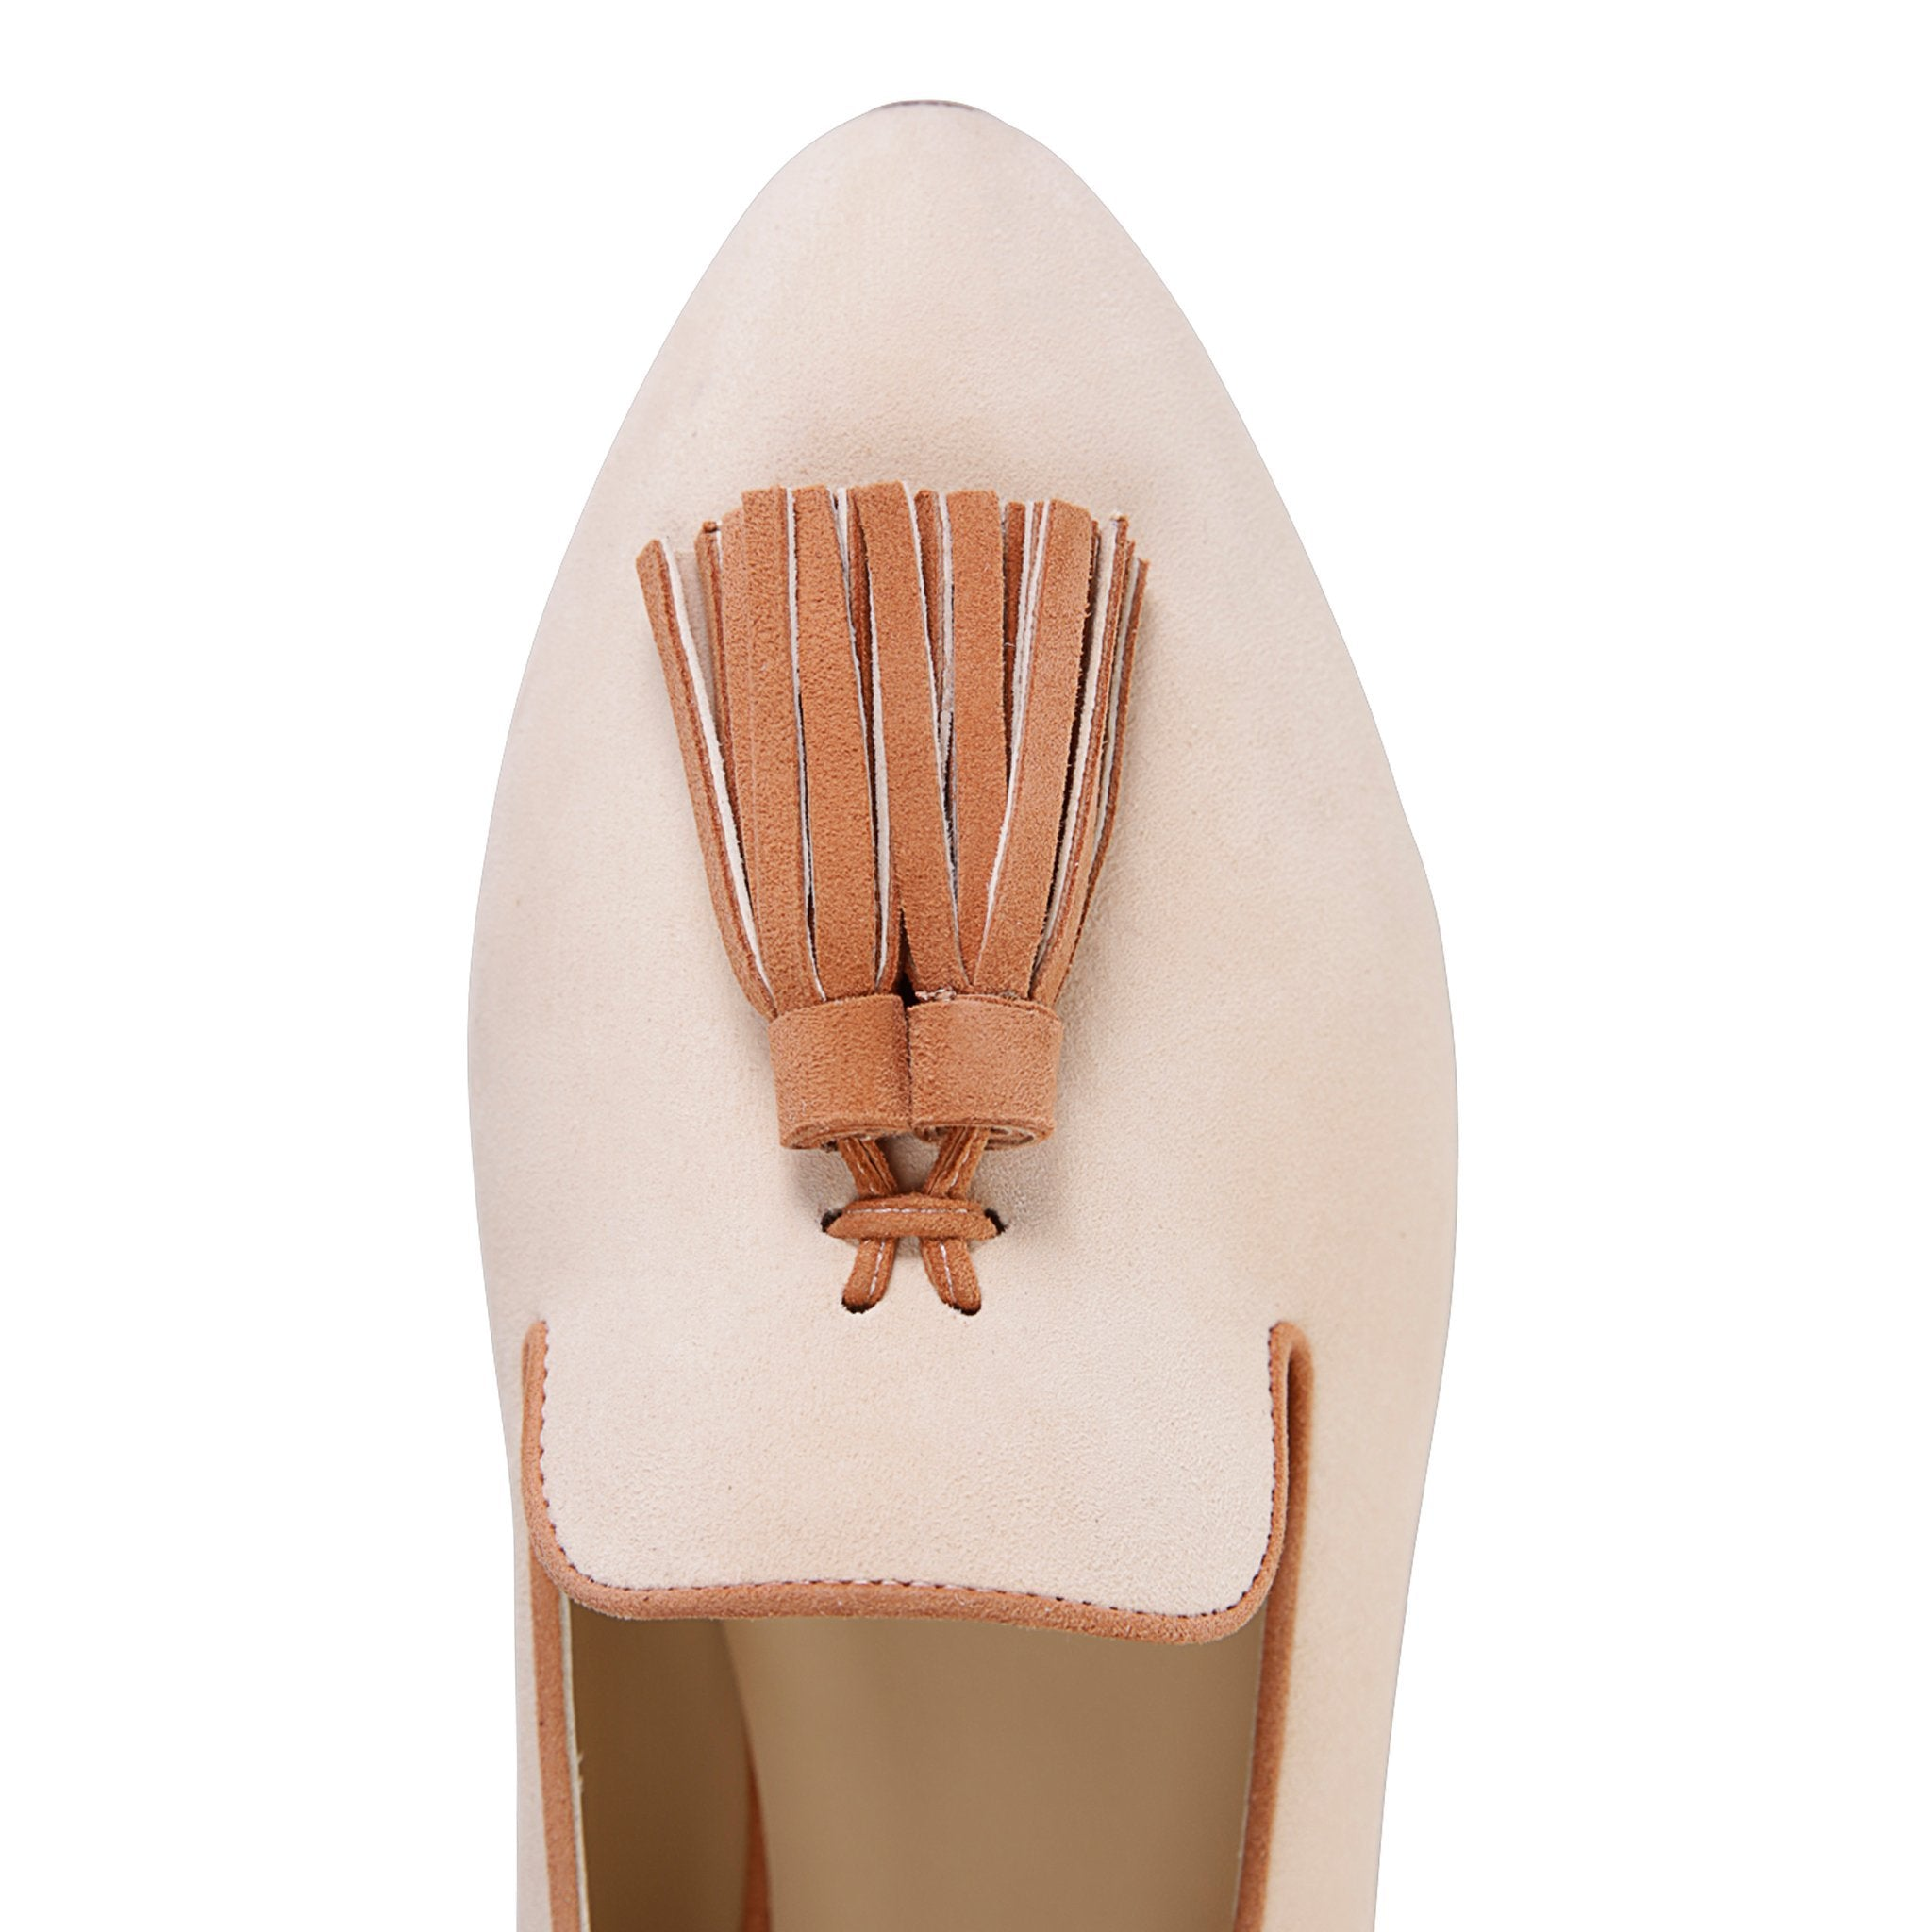 PARMA - Velukid Panna + Dune, VIAJIYU - Women's Hand Made Sustainable Luxury Shoes. Made in Italy. Made to Order.